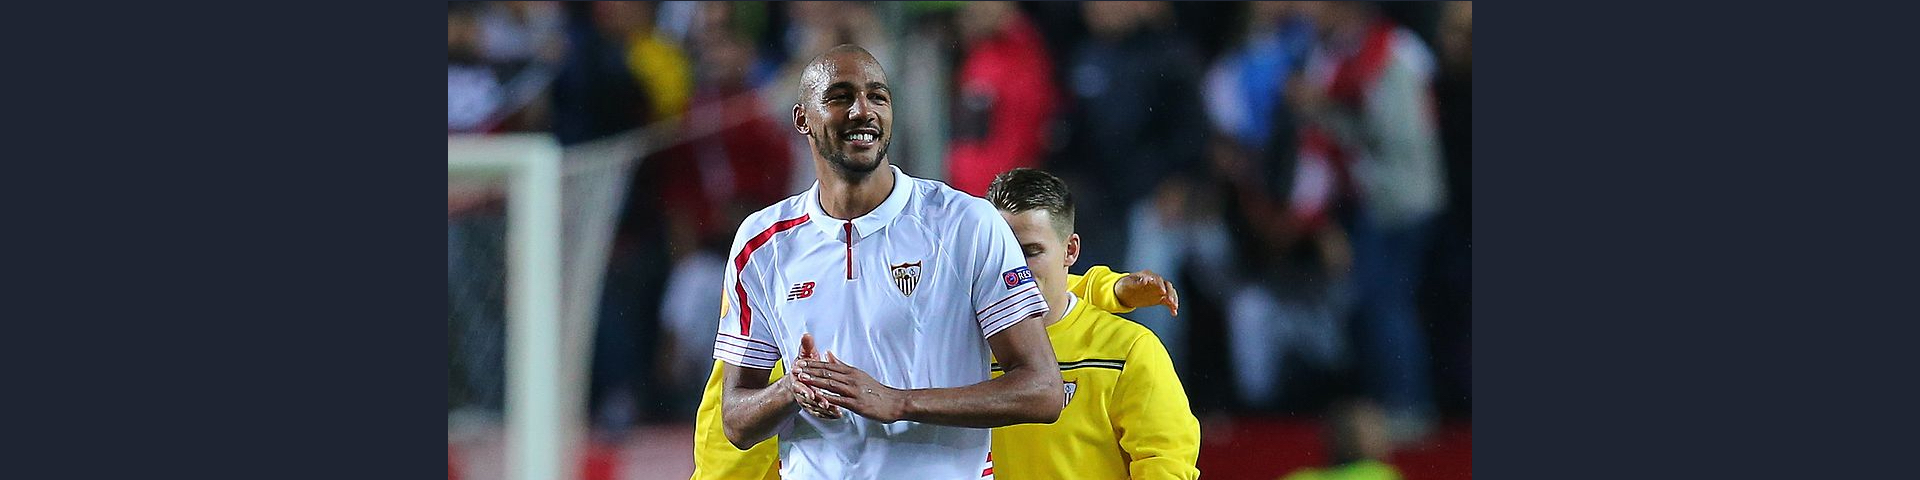 Is Arsenal target N'Zonzi a difference maker?